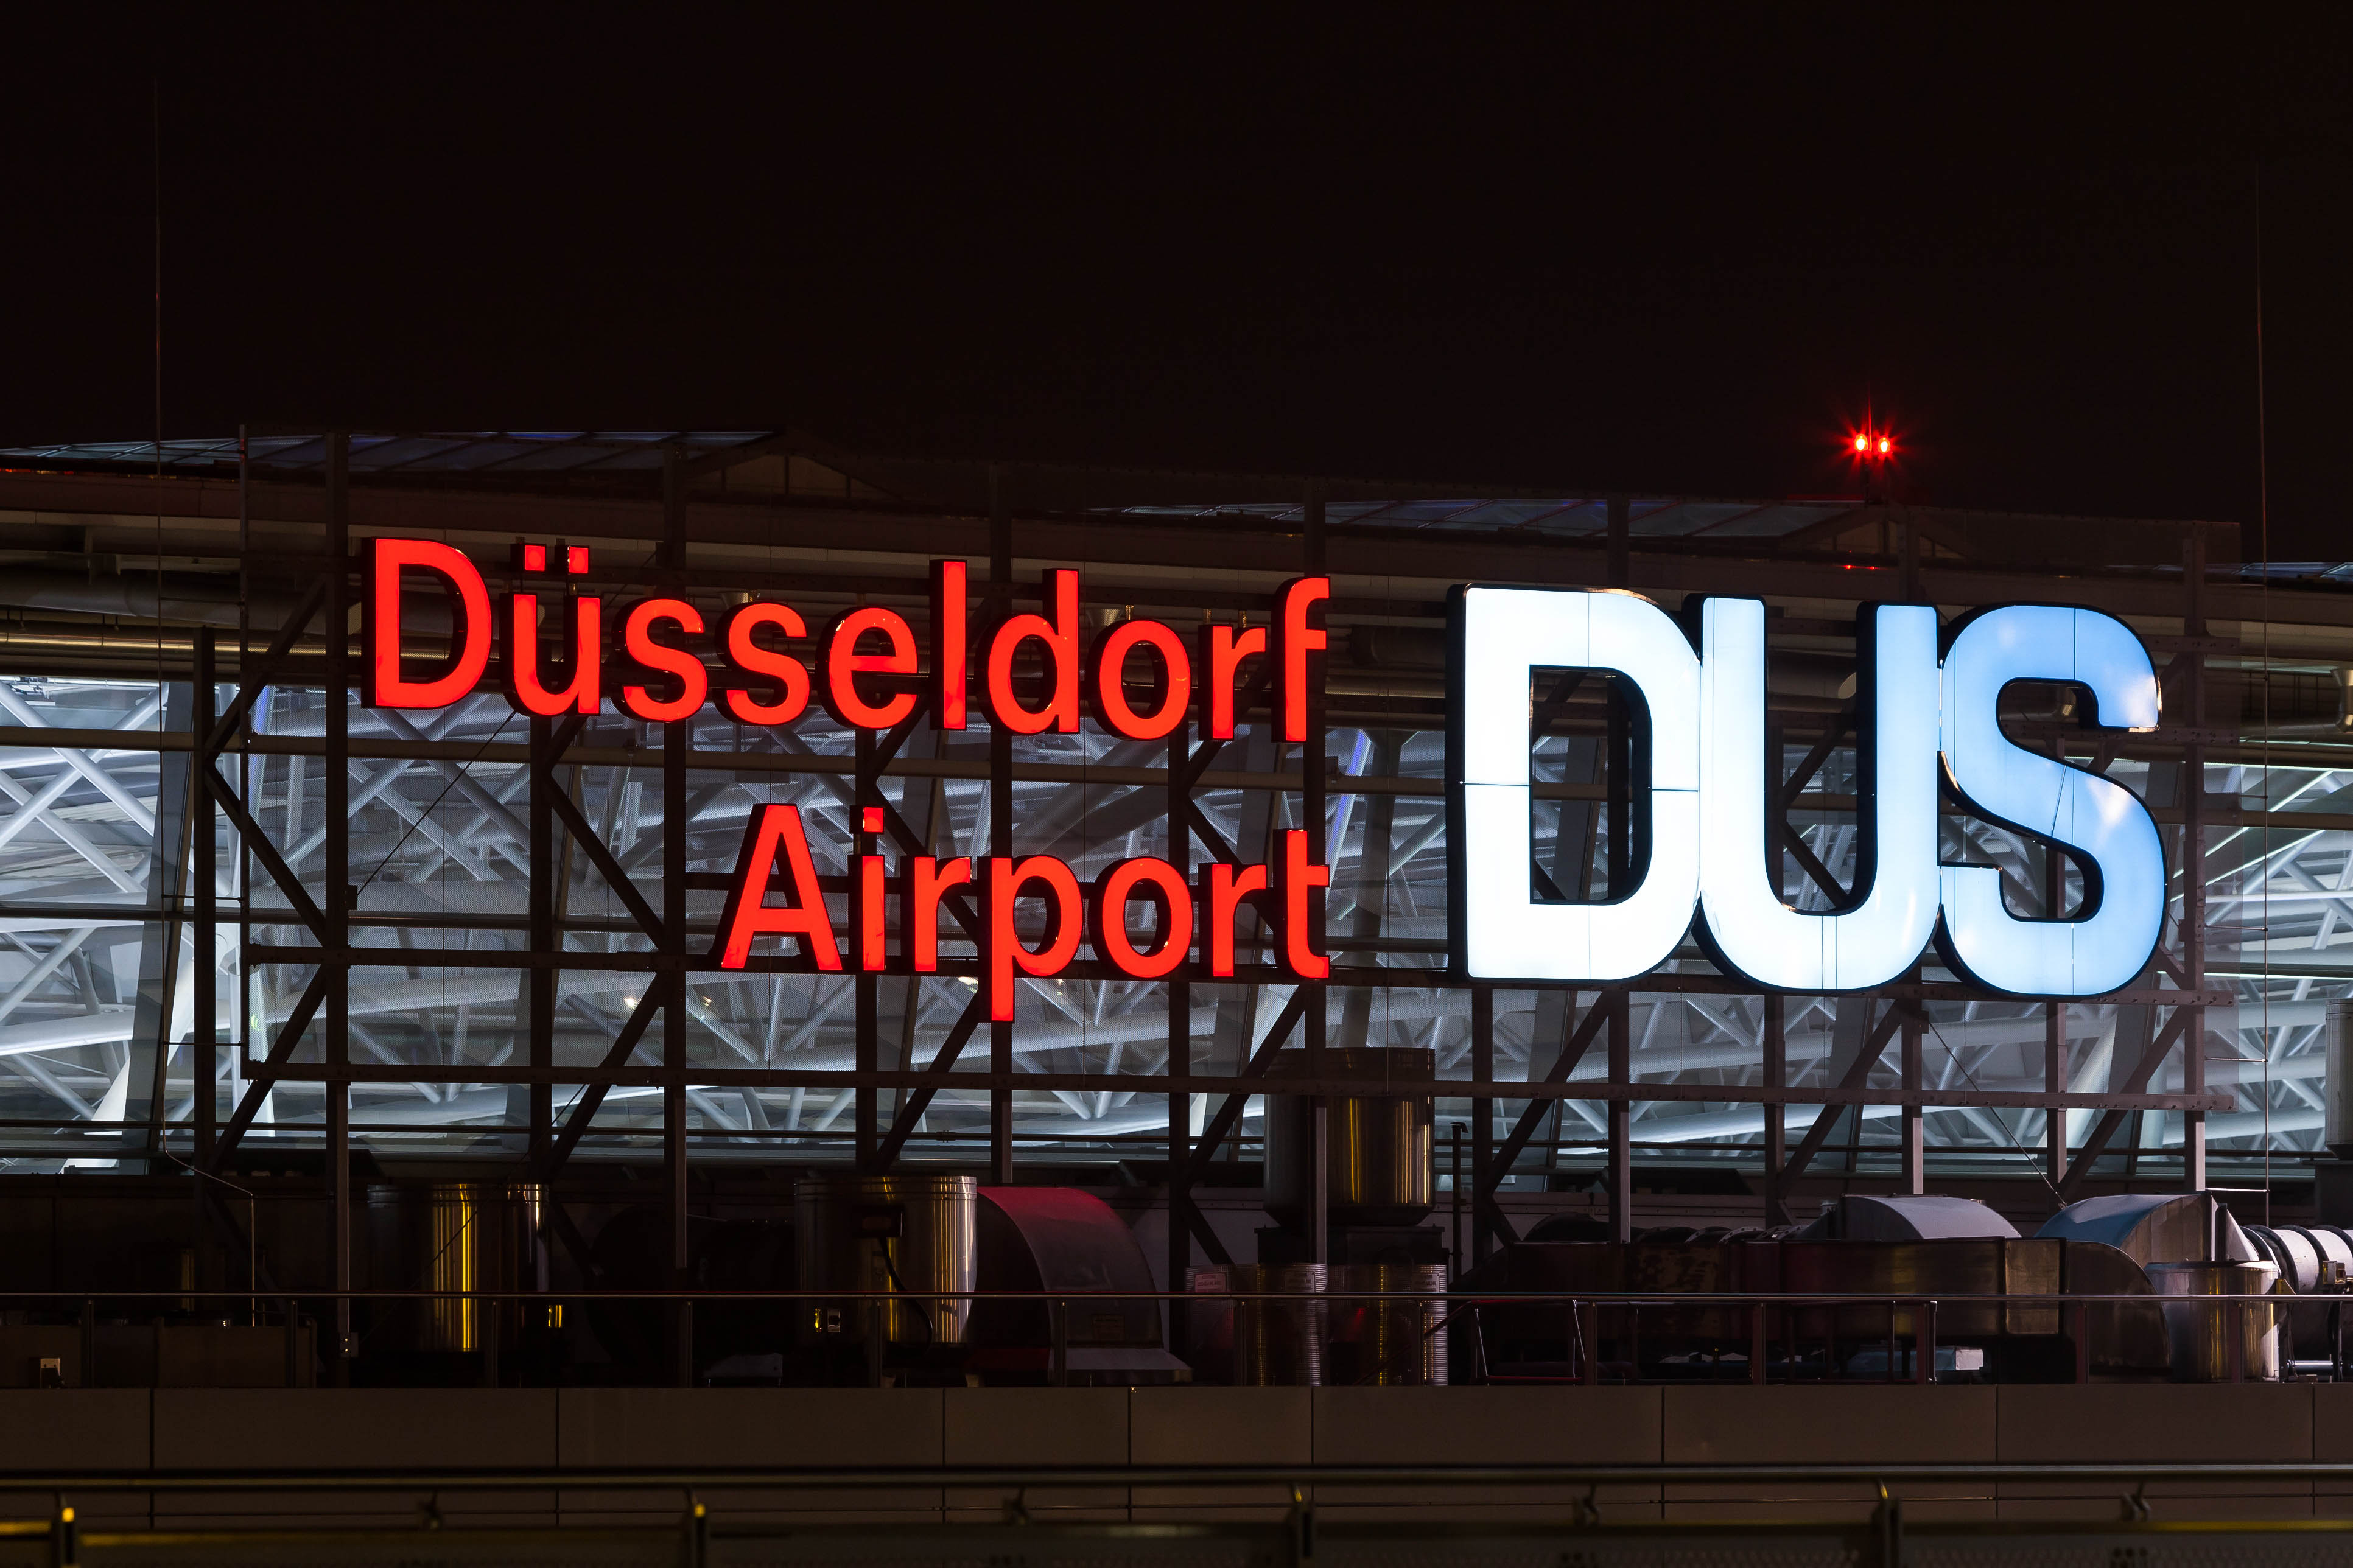 duesseldorf airport germany sign at night